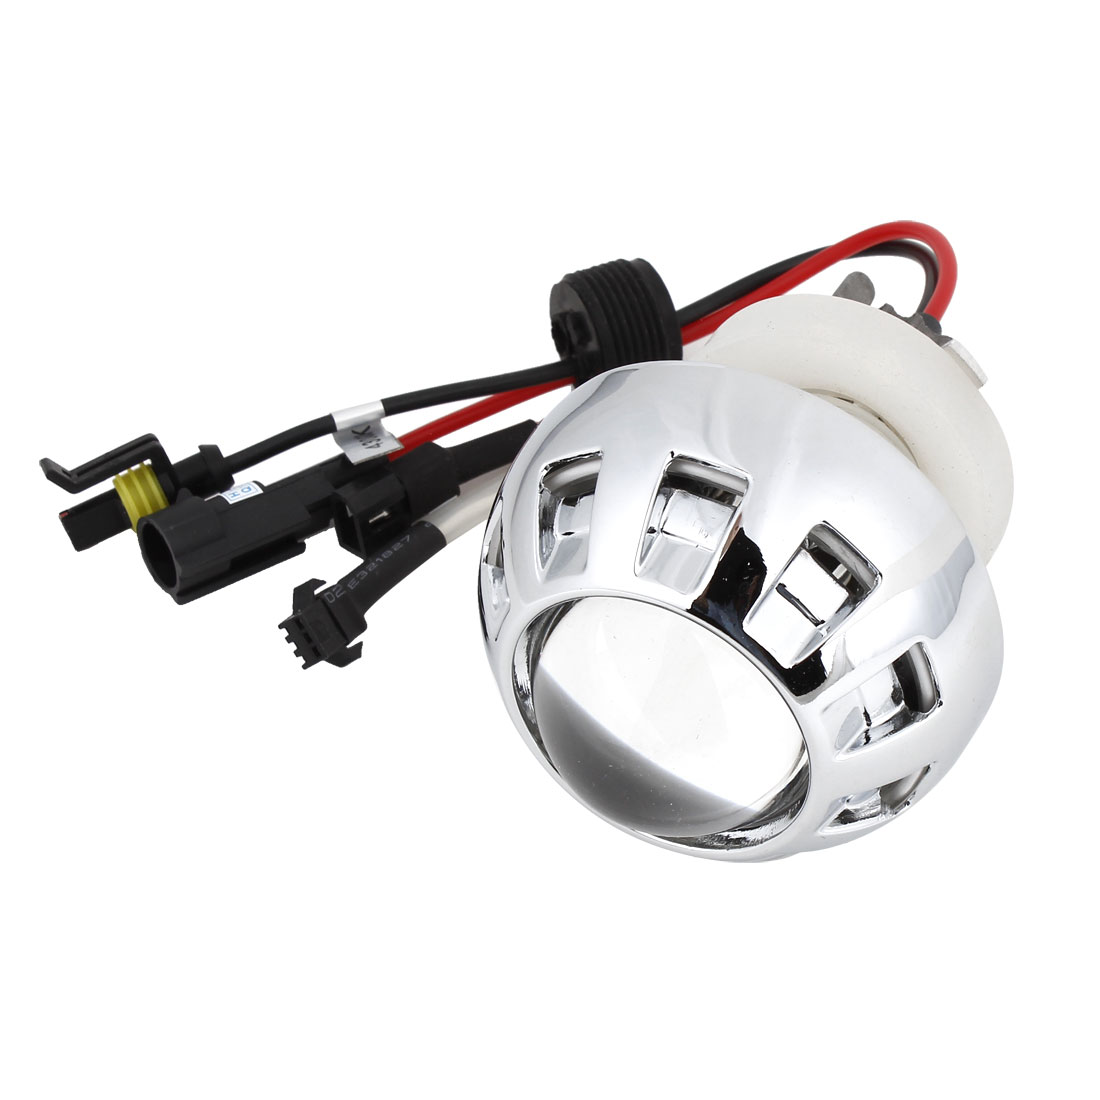 DC 12V 4300K Angel Eye Motorcycle HID Xenon Projector White Lens Lamp Kit w Harness